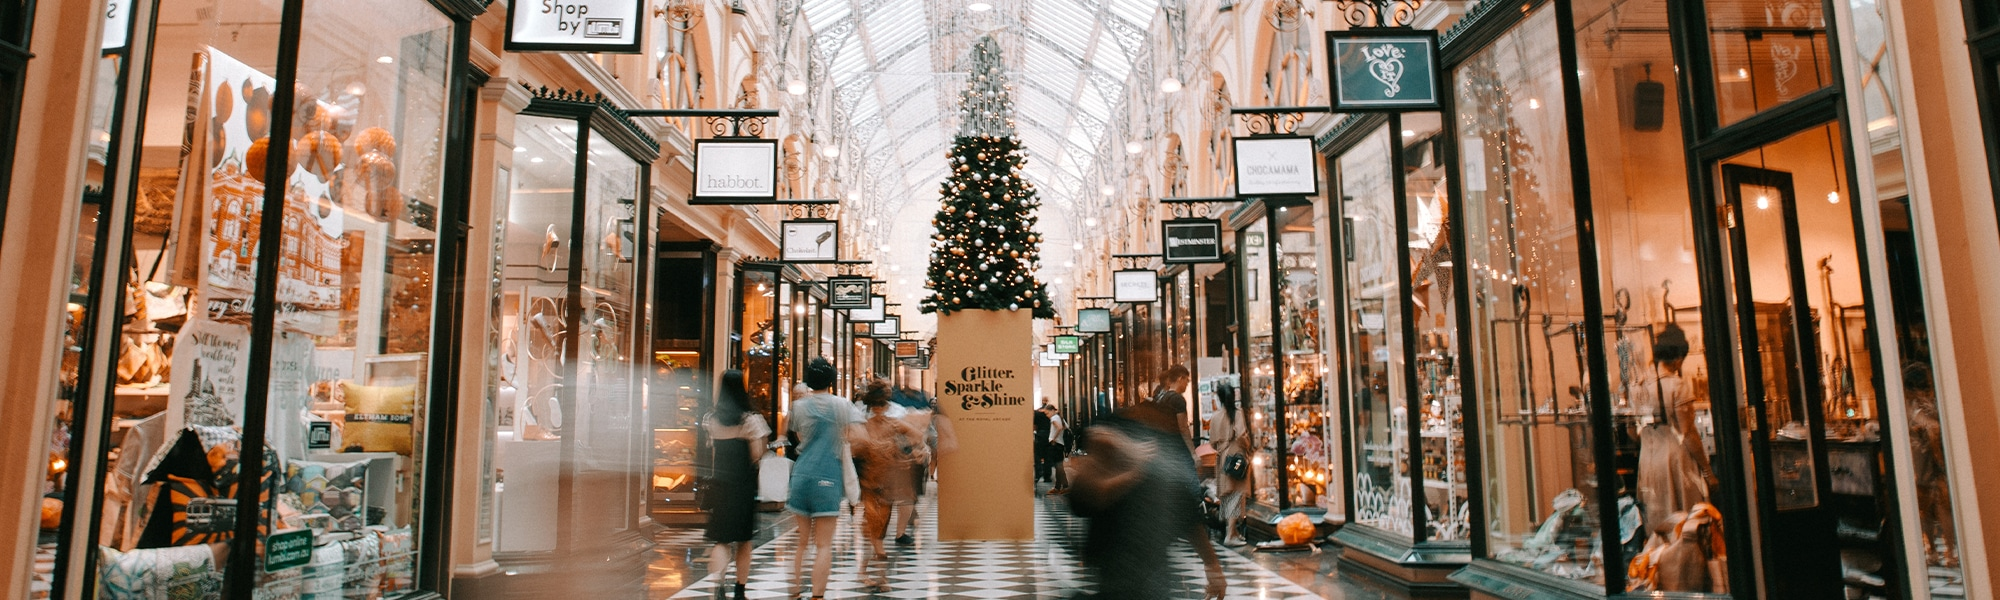 Changes in Store: Top 3 Economic Factors Driving Holiday 2019 Spending